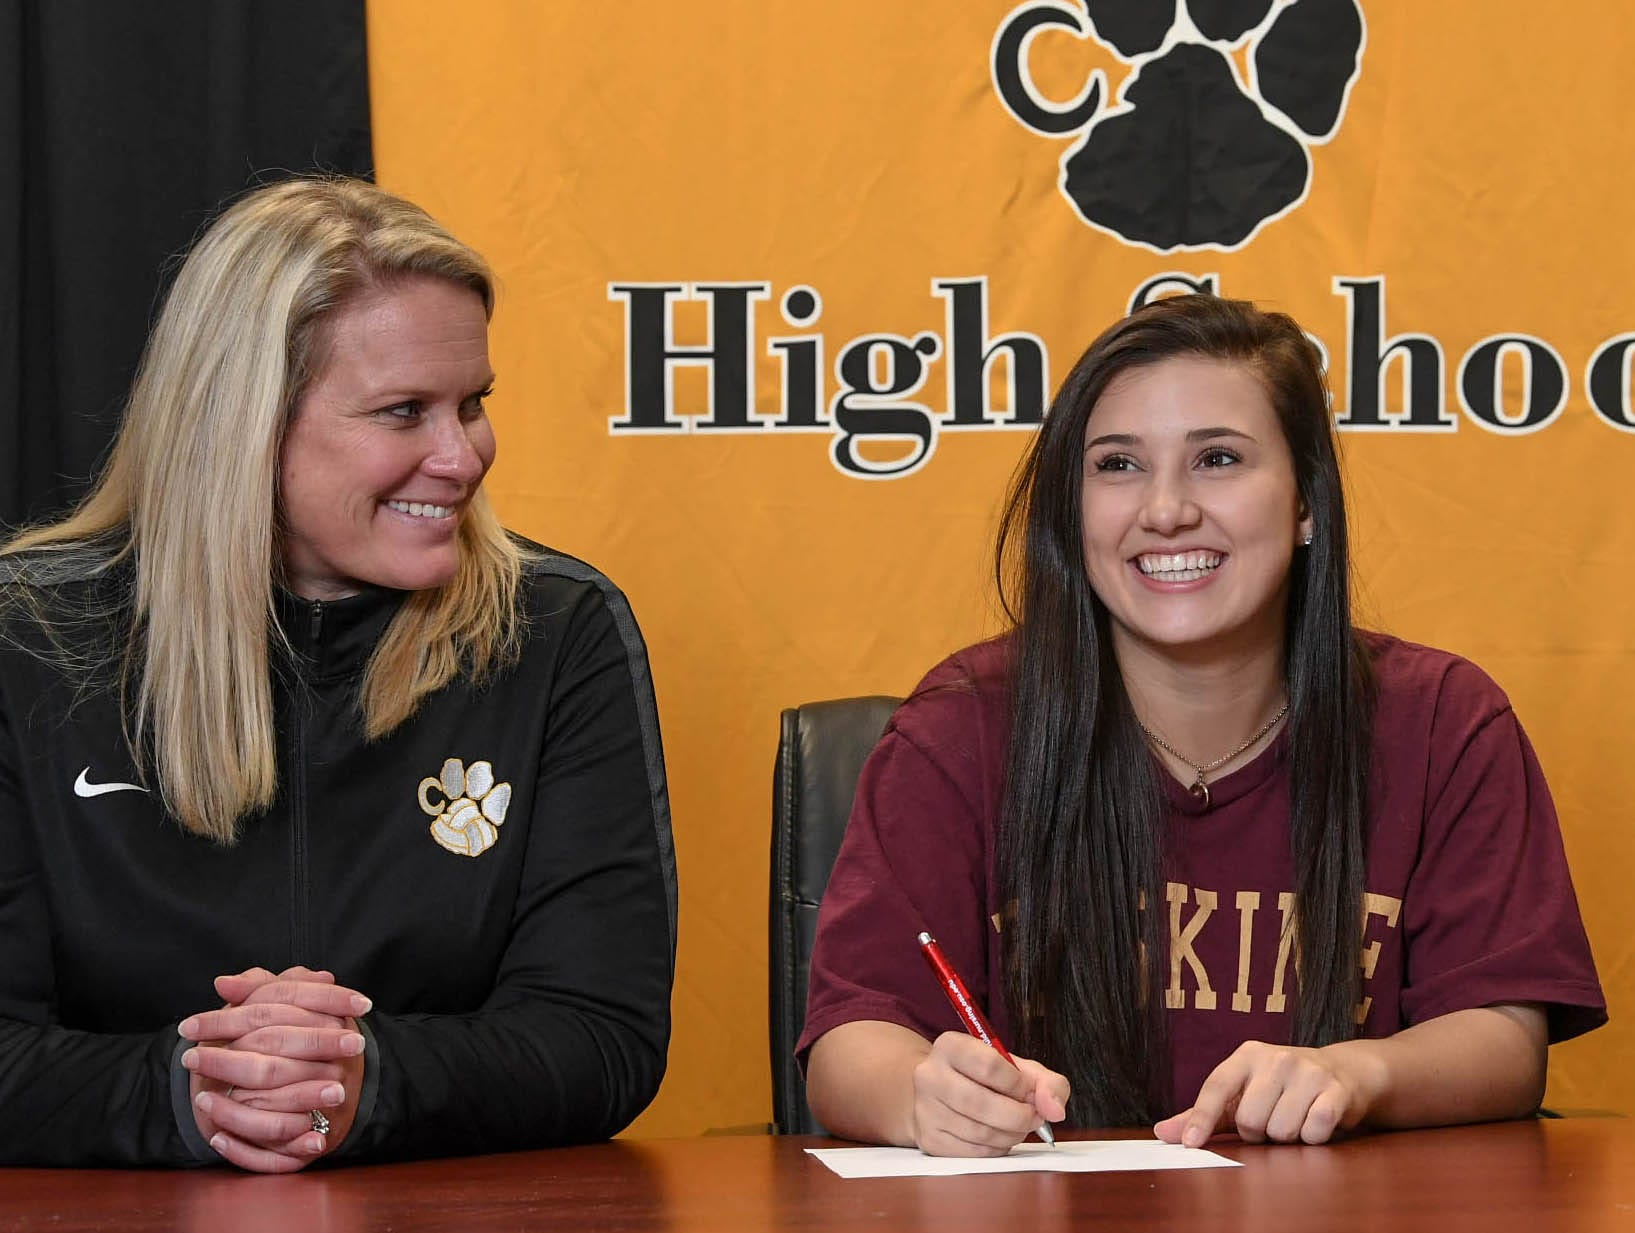 Lucy Bryant, right, signs a National Letter of Intent to play beach volleyball at Erskine College, near her high school volleyball coach Kristen Fouts, left, during a National Signing Day event at Crescent High School in Iva on Wedesday.